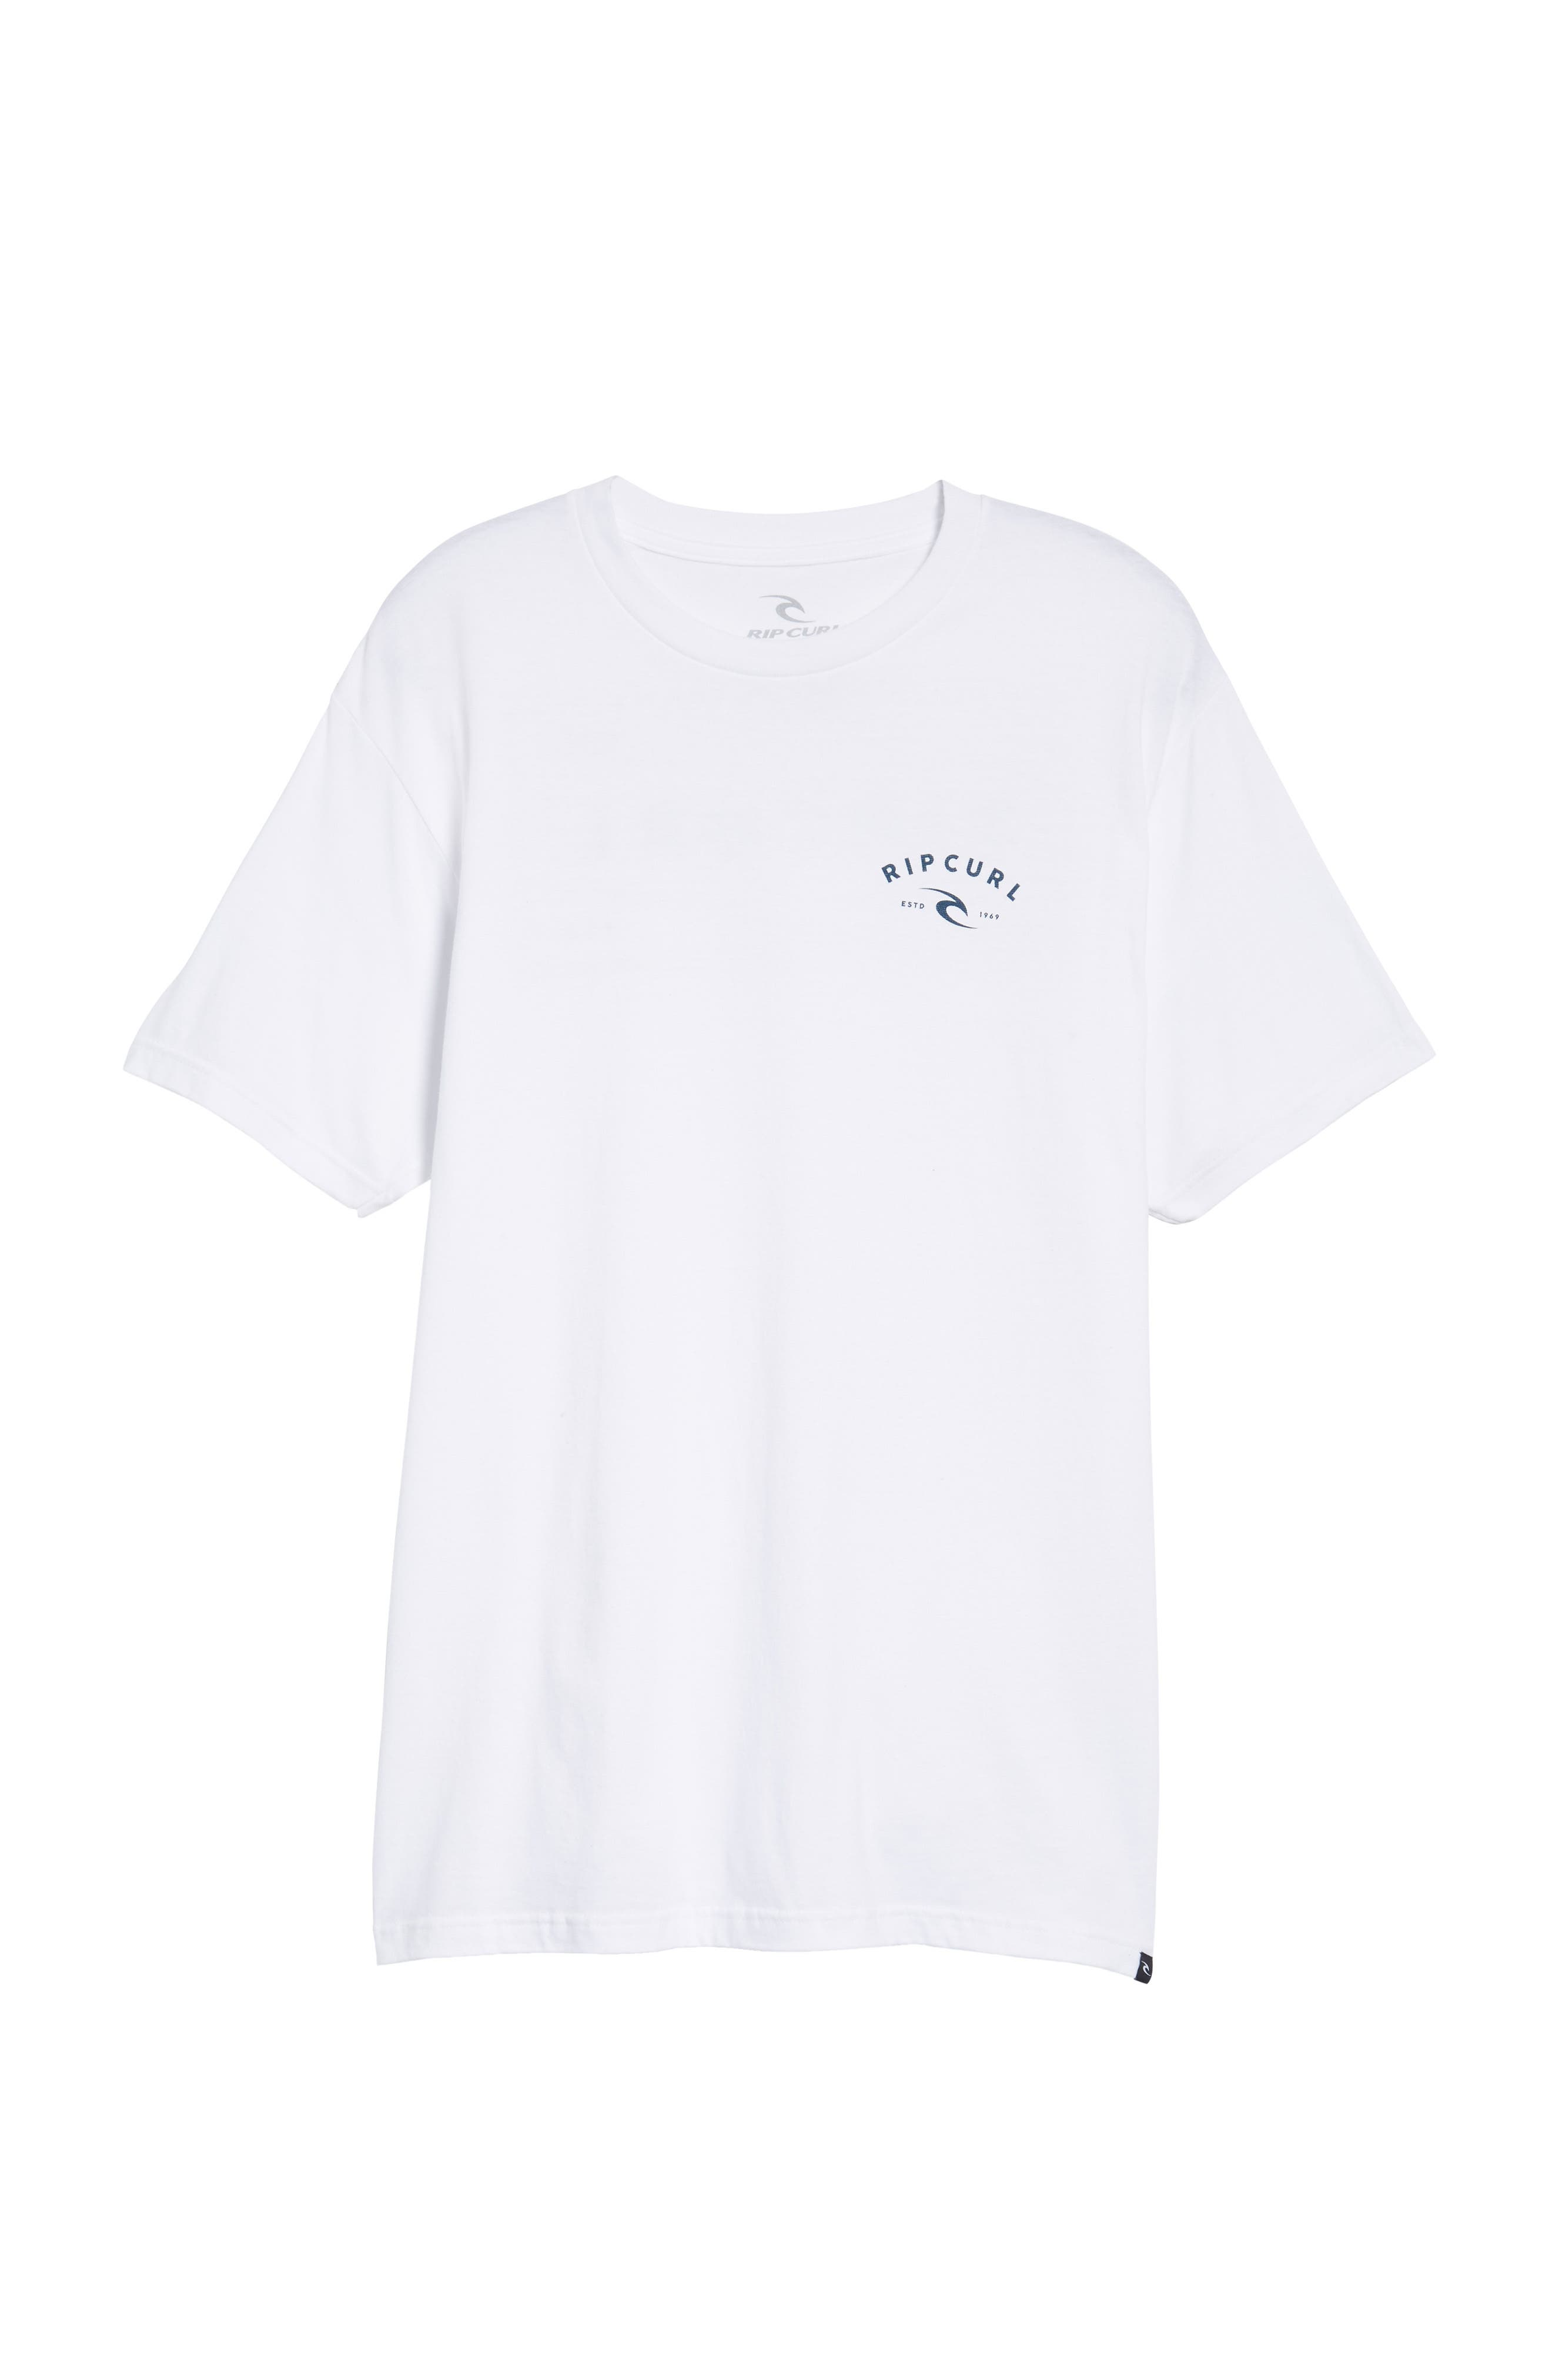 Down South Heather Logo Graphic T-Shirt,                             Alternate thumbnail 6, color,                             100